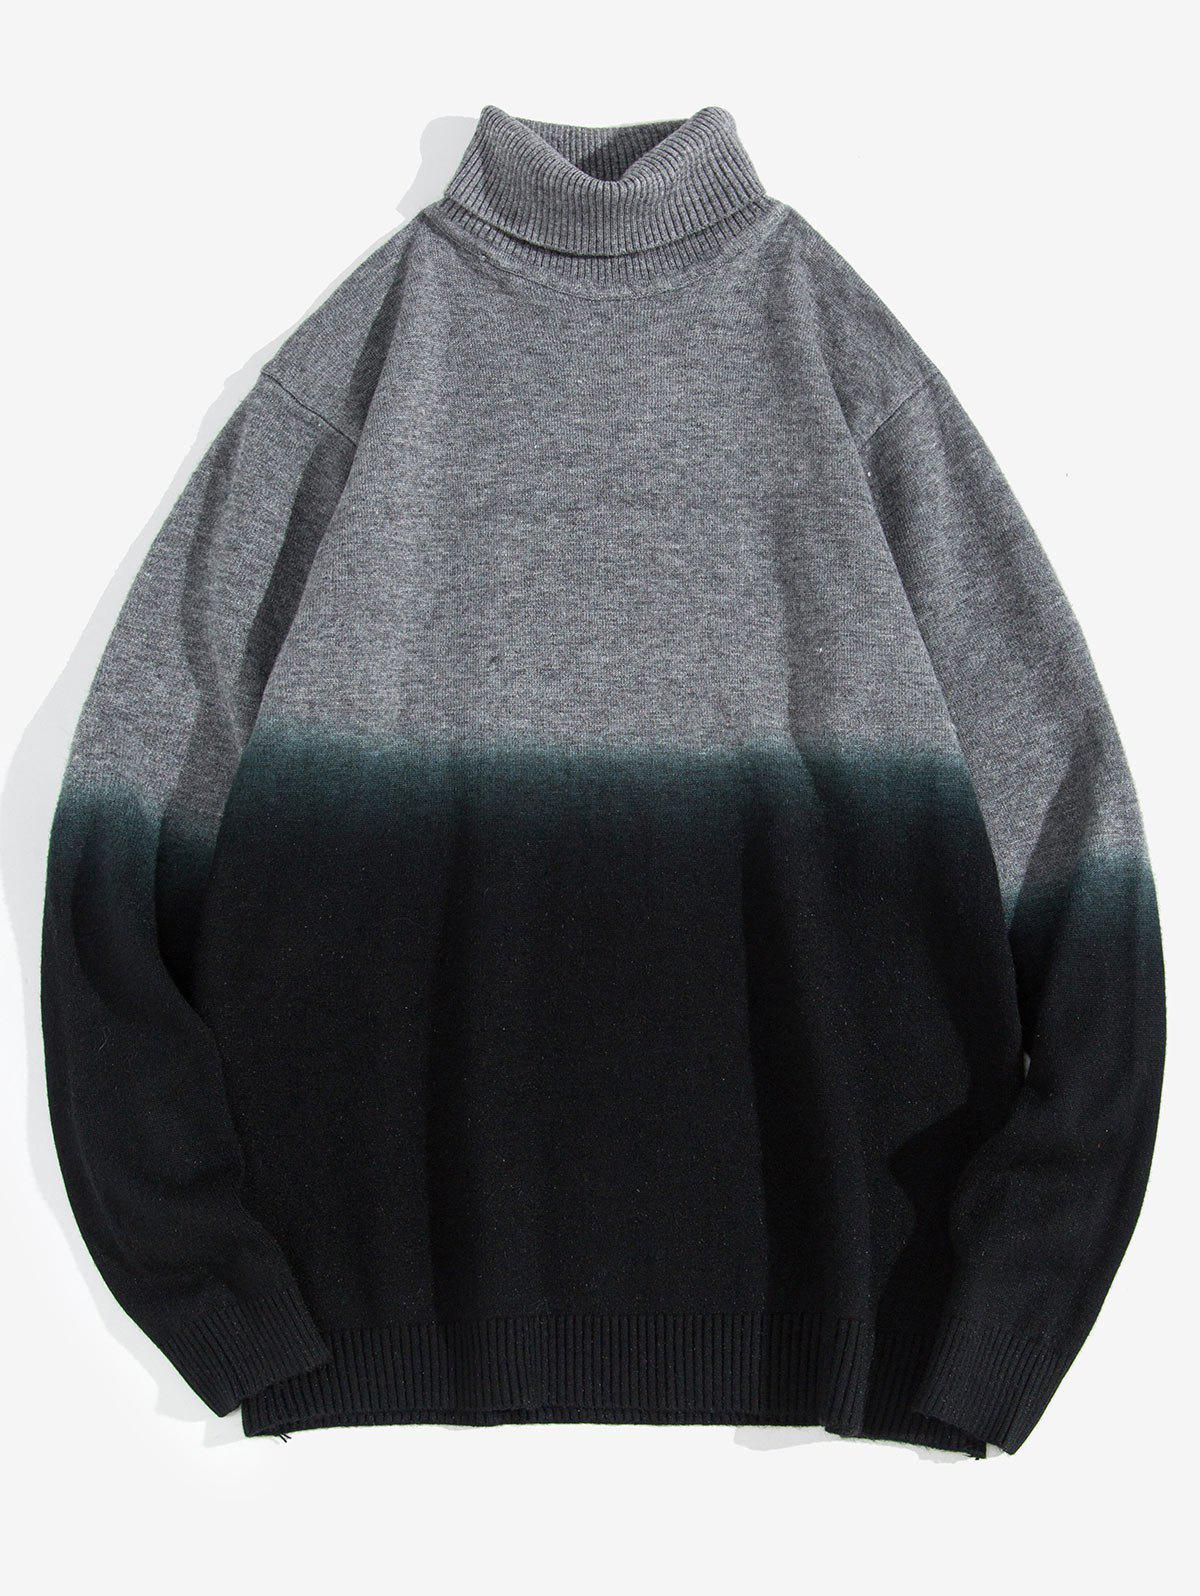 Turtleneck Two-tone Ombre Sweater - GRAY S